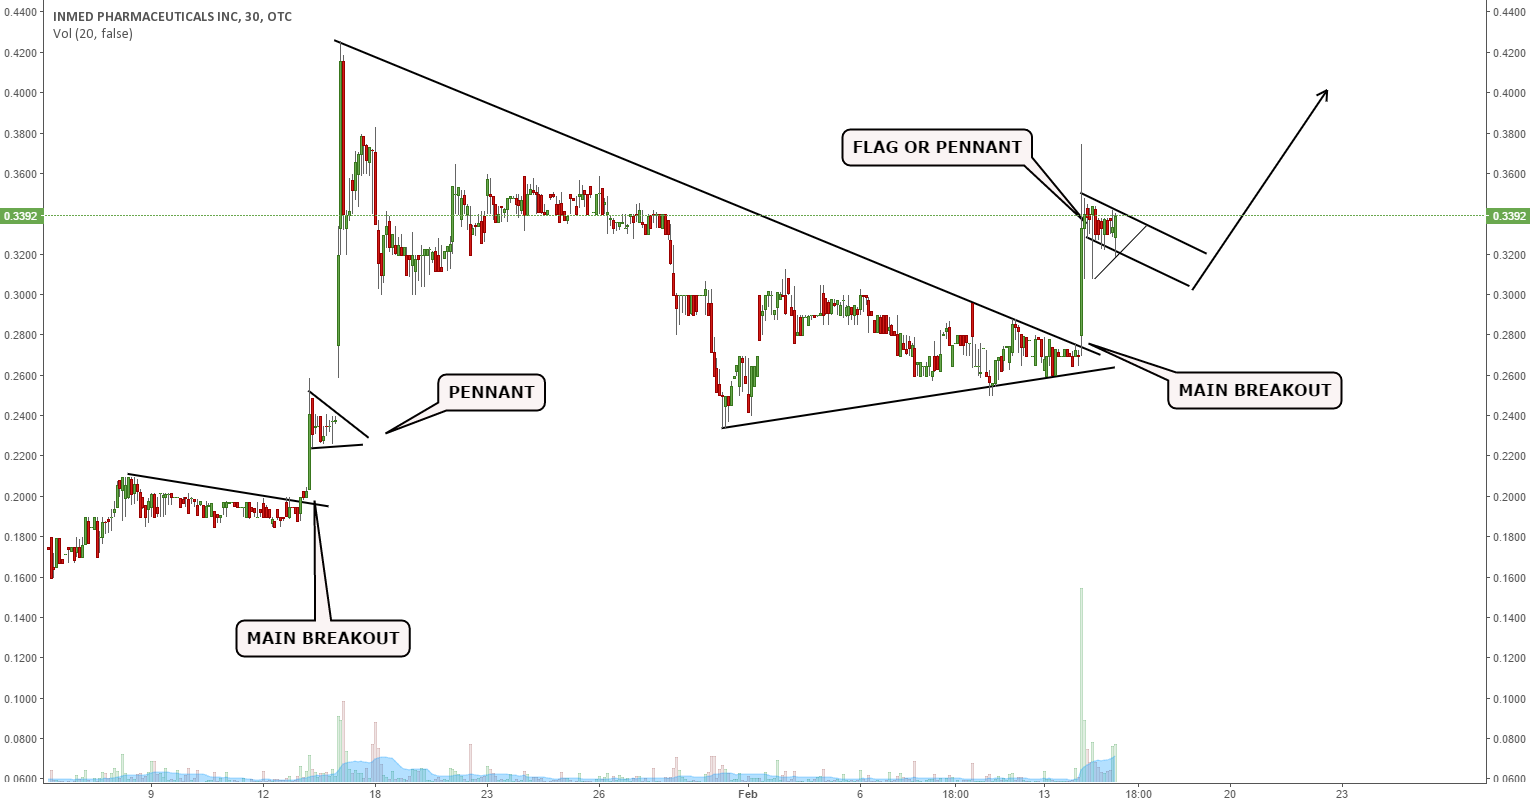 Pattern Recognition on real time charts: flags and pennants for OTC